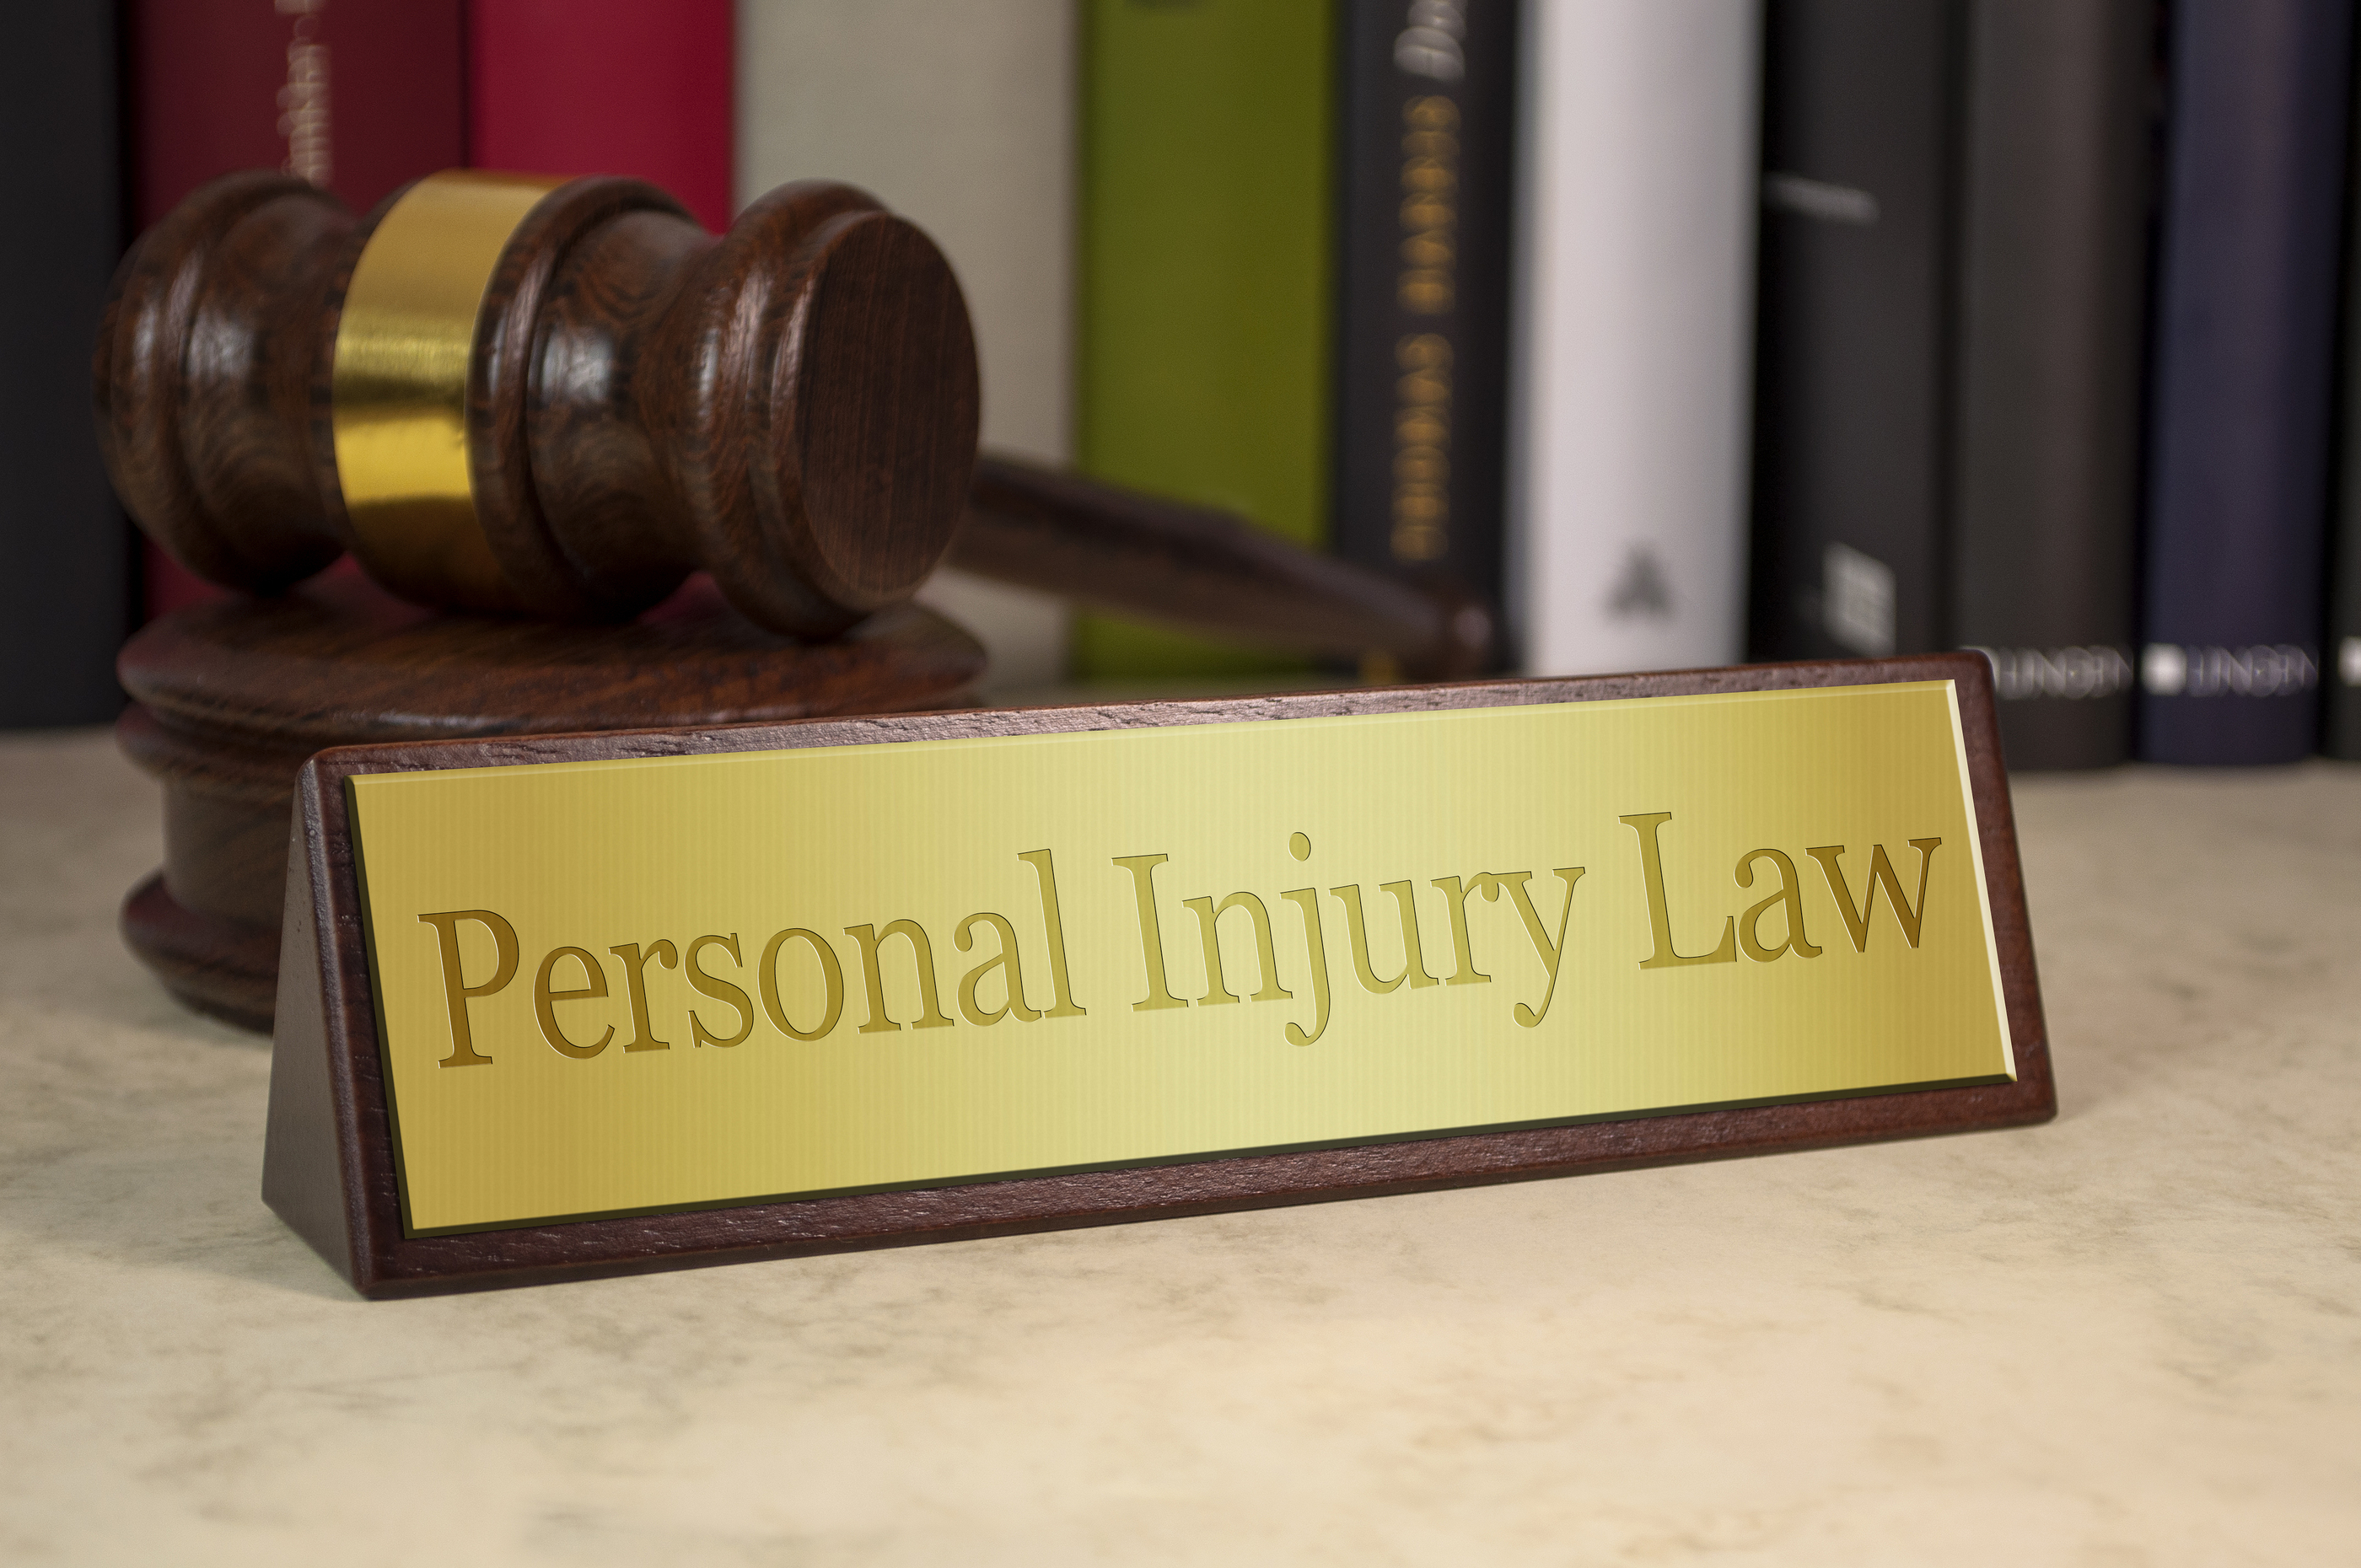 Denver Personal Injury Attorney personal injury law name plaque - About Us Photo